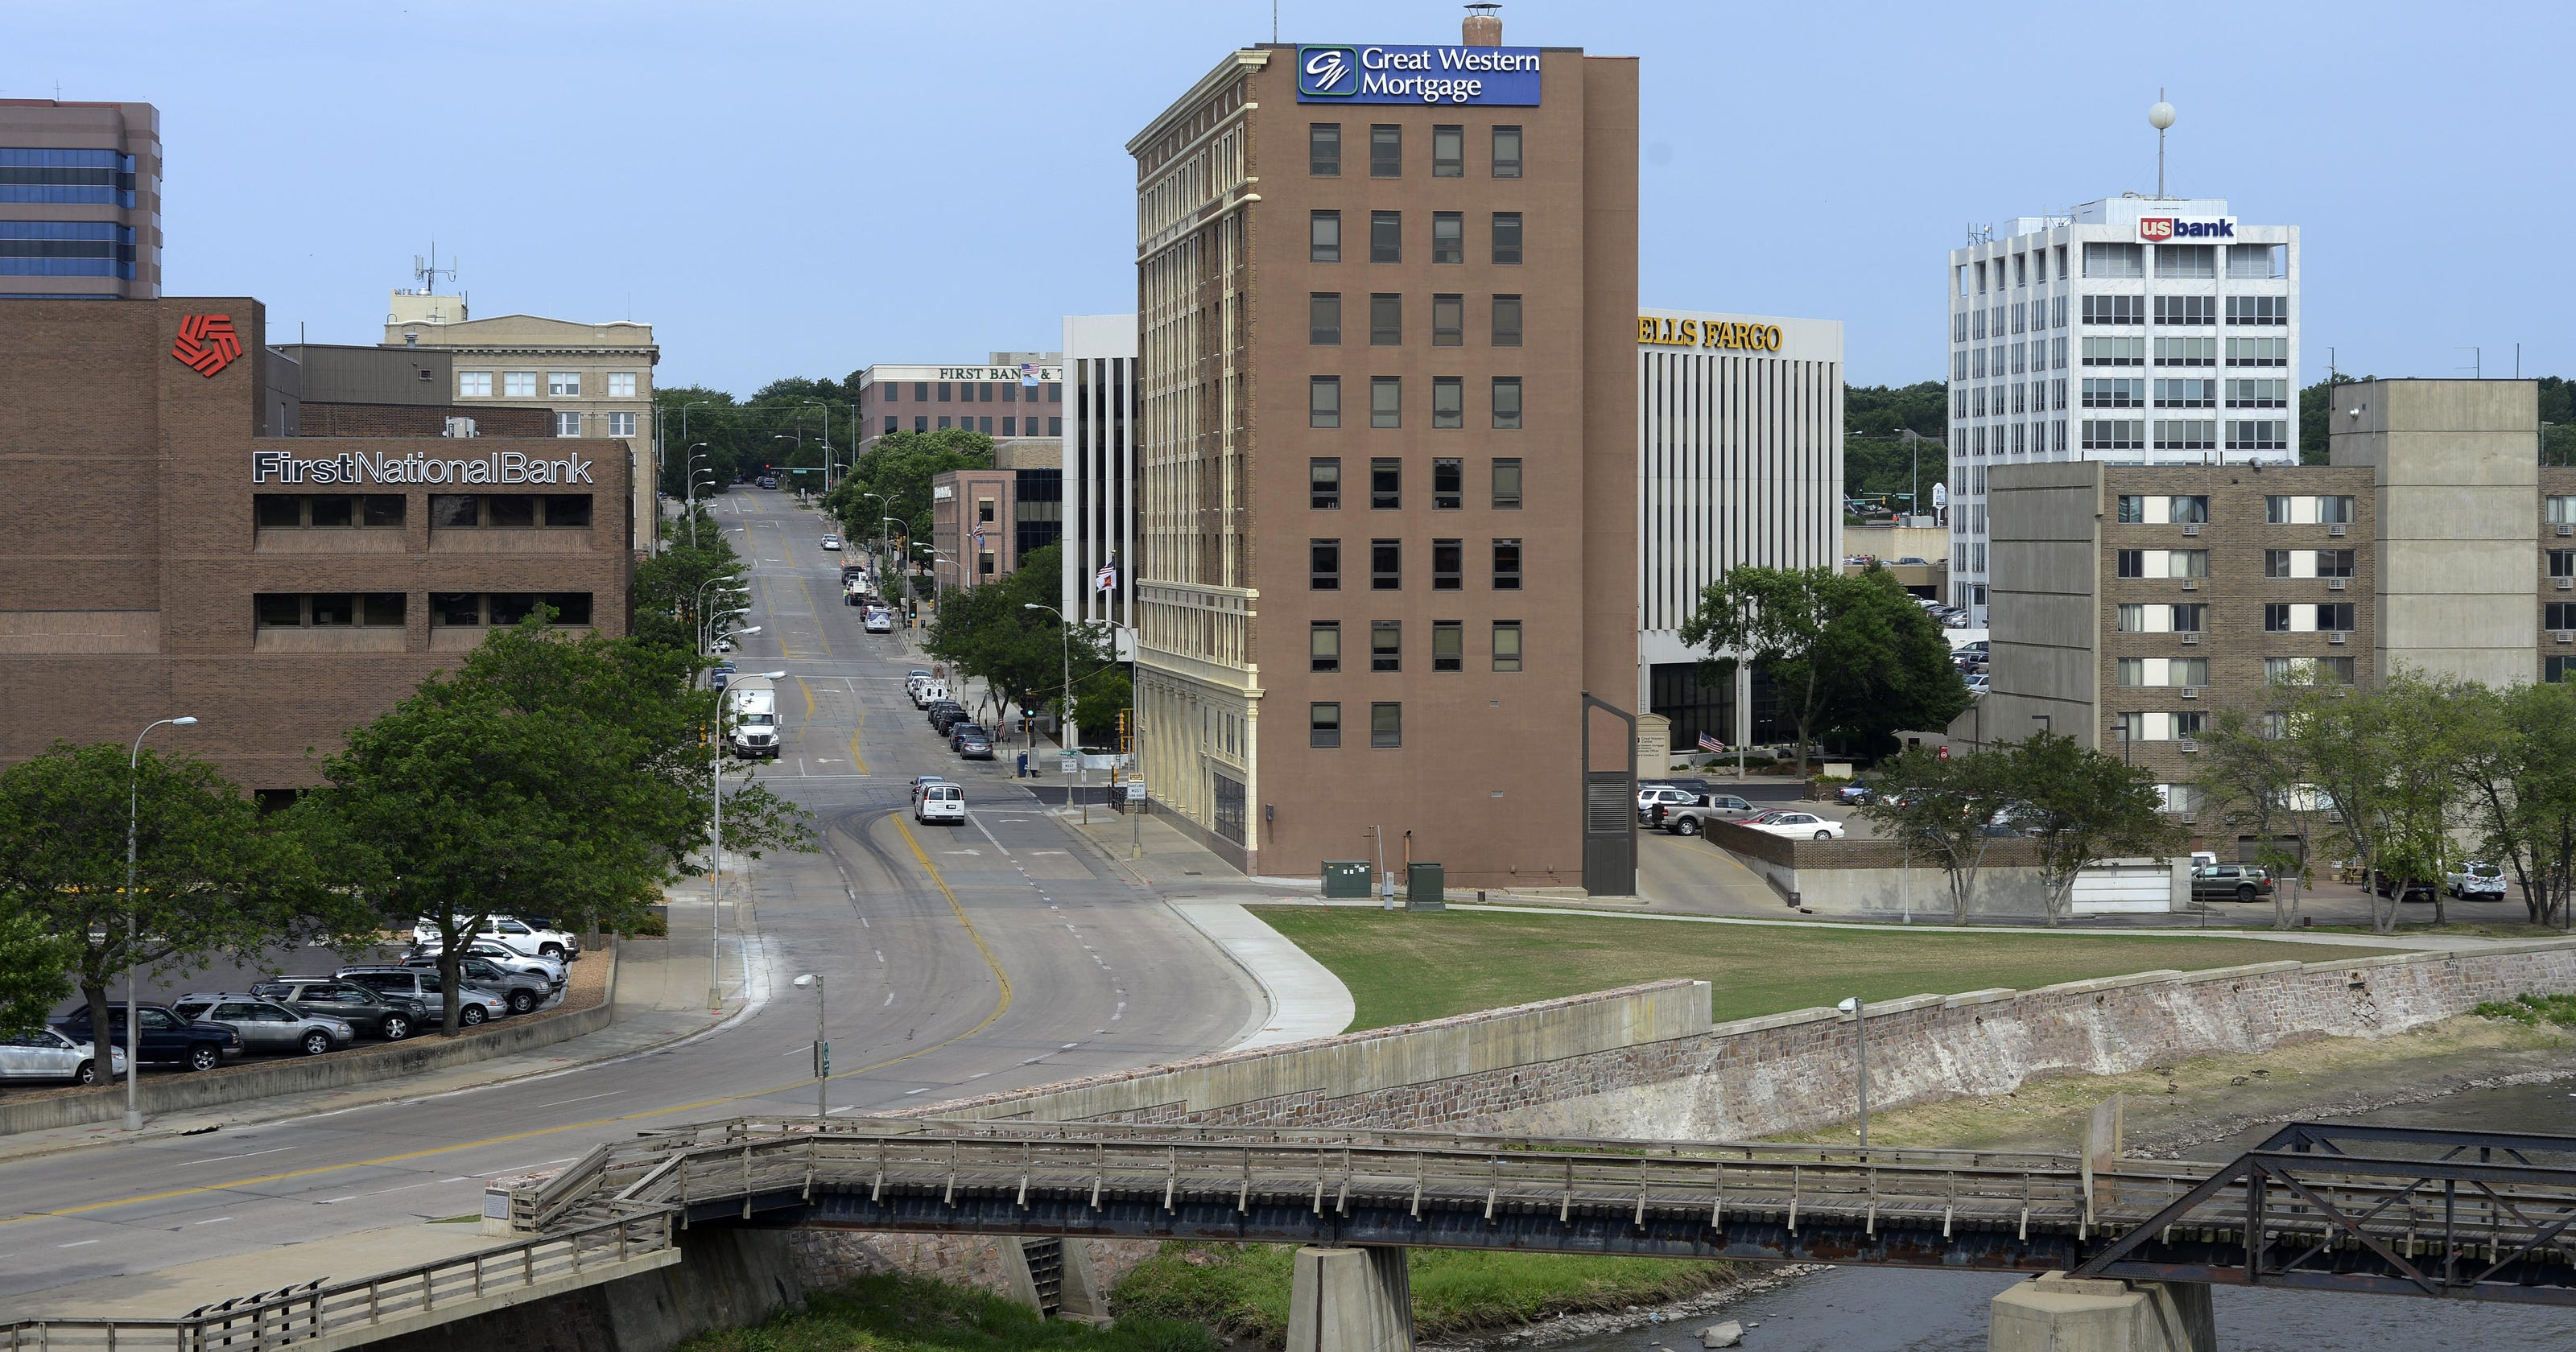 bank first sioux city